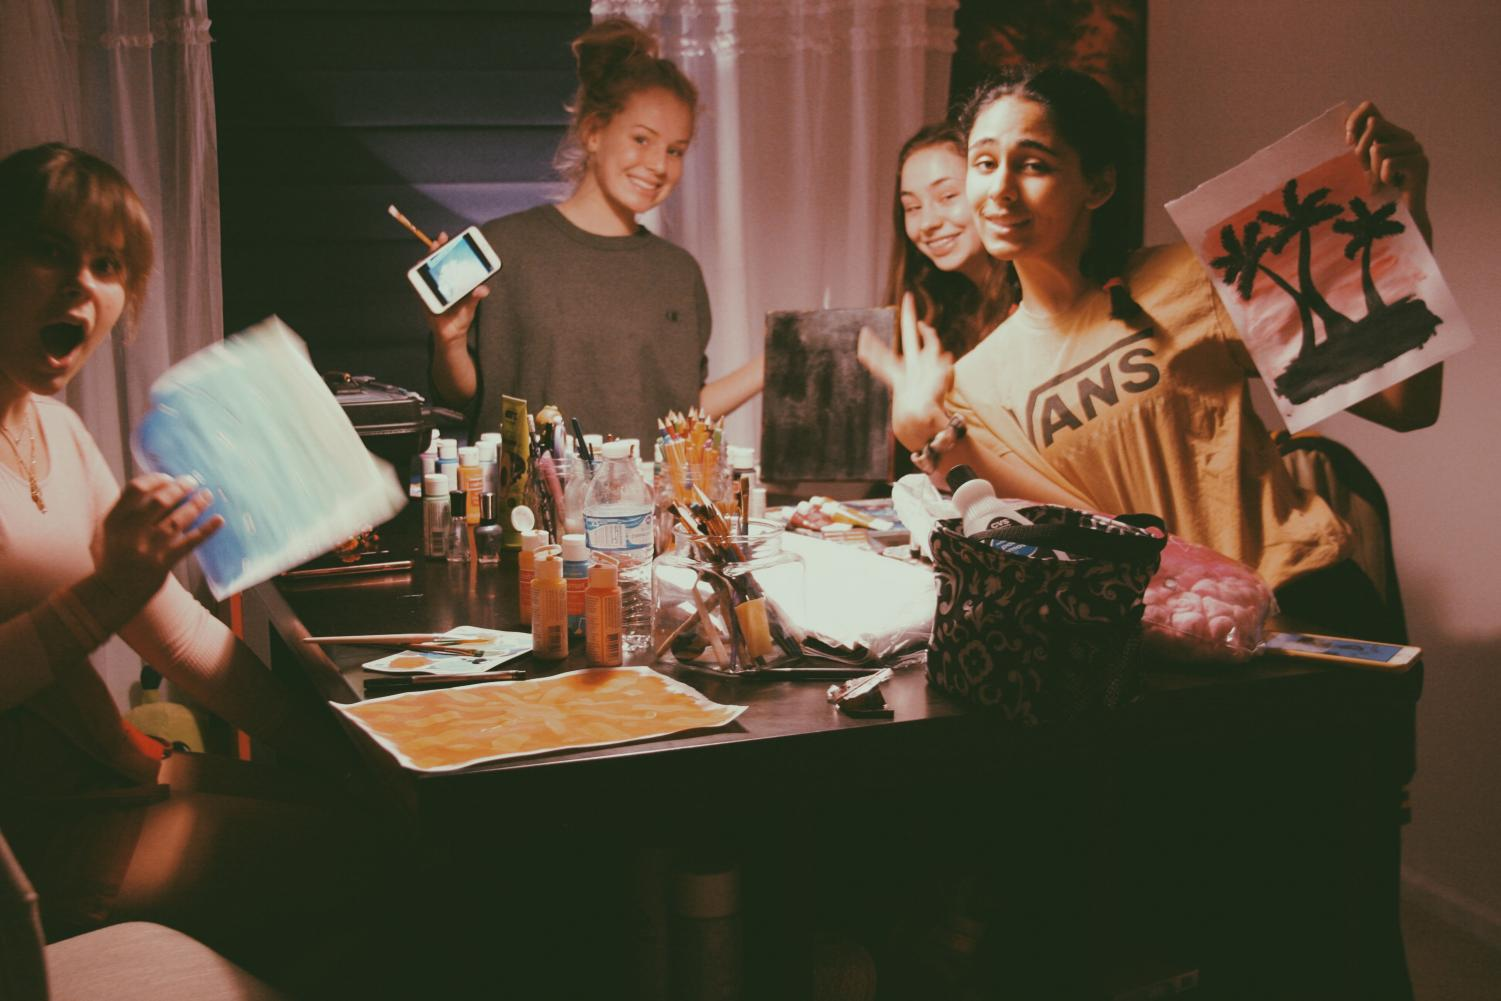 Claire Ferguson, featured far left, paints with friends on a Saturday night.